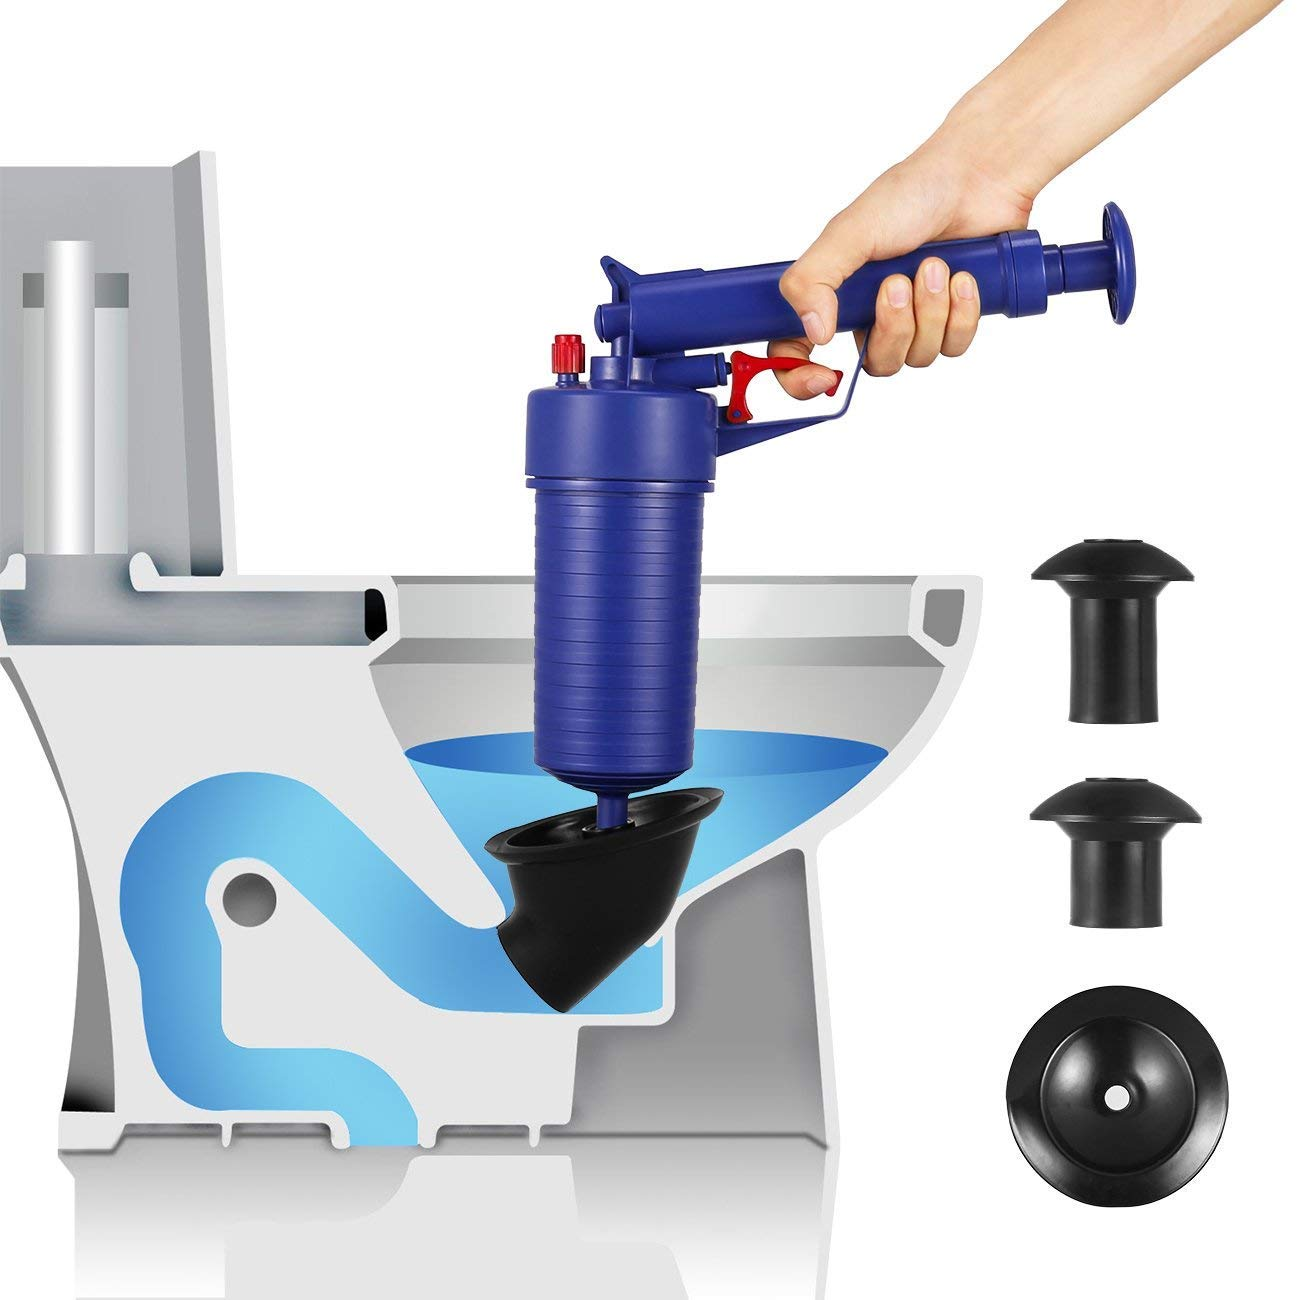 Drain blaster air Powered plunger gun, High Pressure Powerful drain clog remover sink Plunger Opener cleaner pump for Bath Toilets, Bathroom, Shower, kitchen Clogged Pipe Bathtub (blue) by Storystore